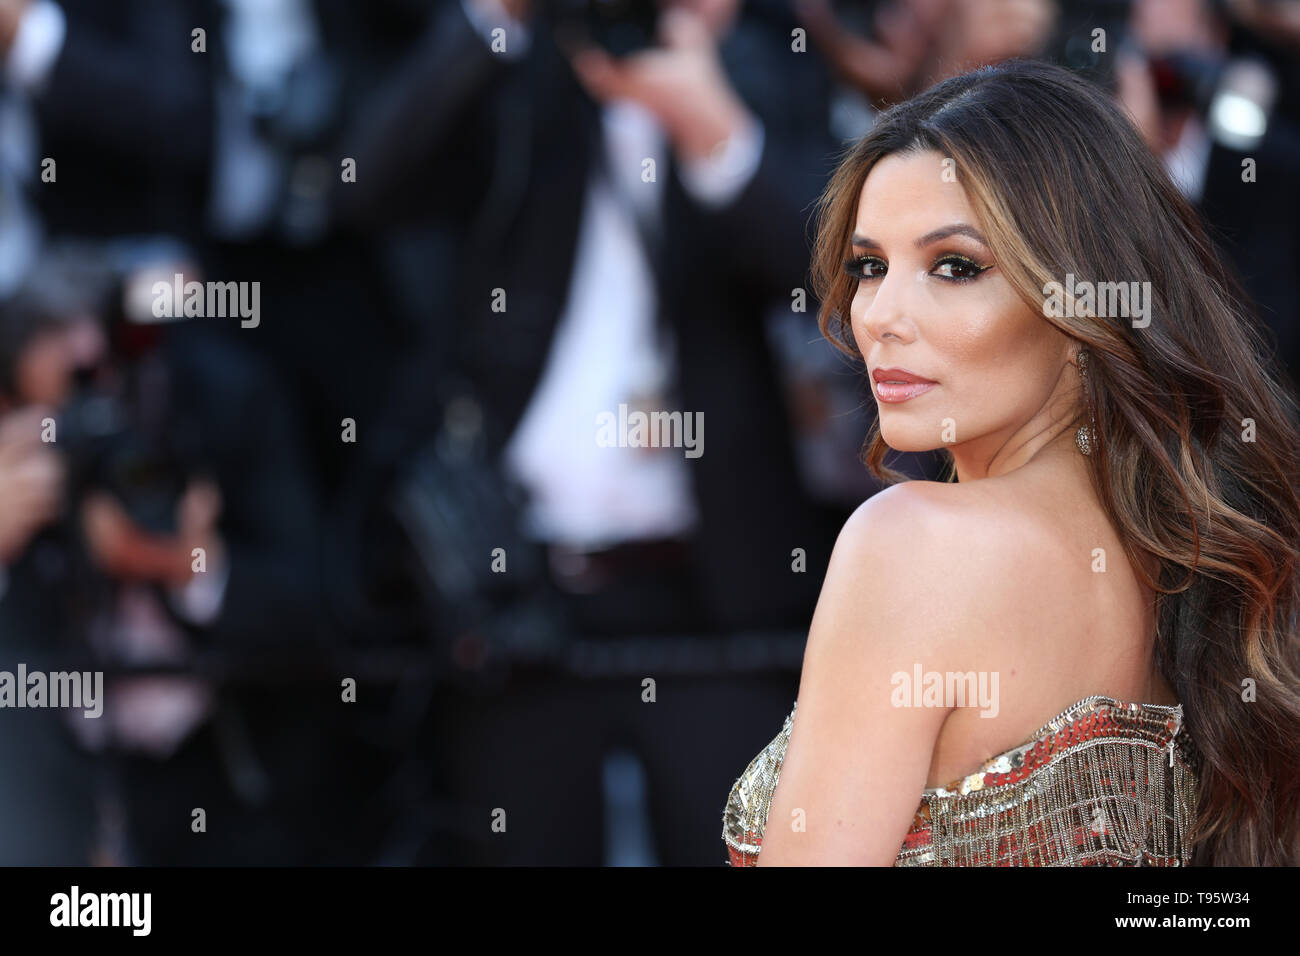 "CANNES, FRANCE - 16 MAI : Eva Longoria assiste à la projection de ""Rocket Man"" au cours de la 72e Festival de Cannes (Credit : Mickael Chavet/Projet Daybreak/Alamy Live News) Banque D'Images"